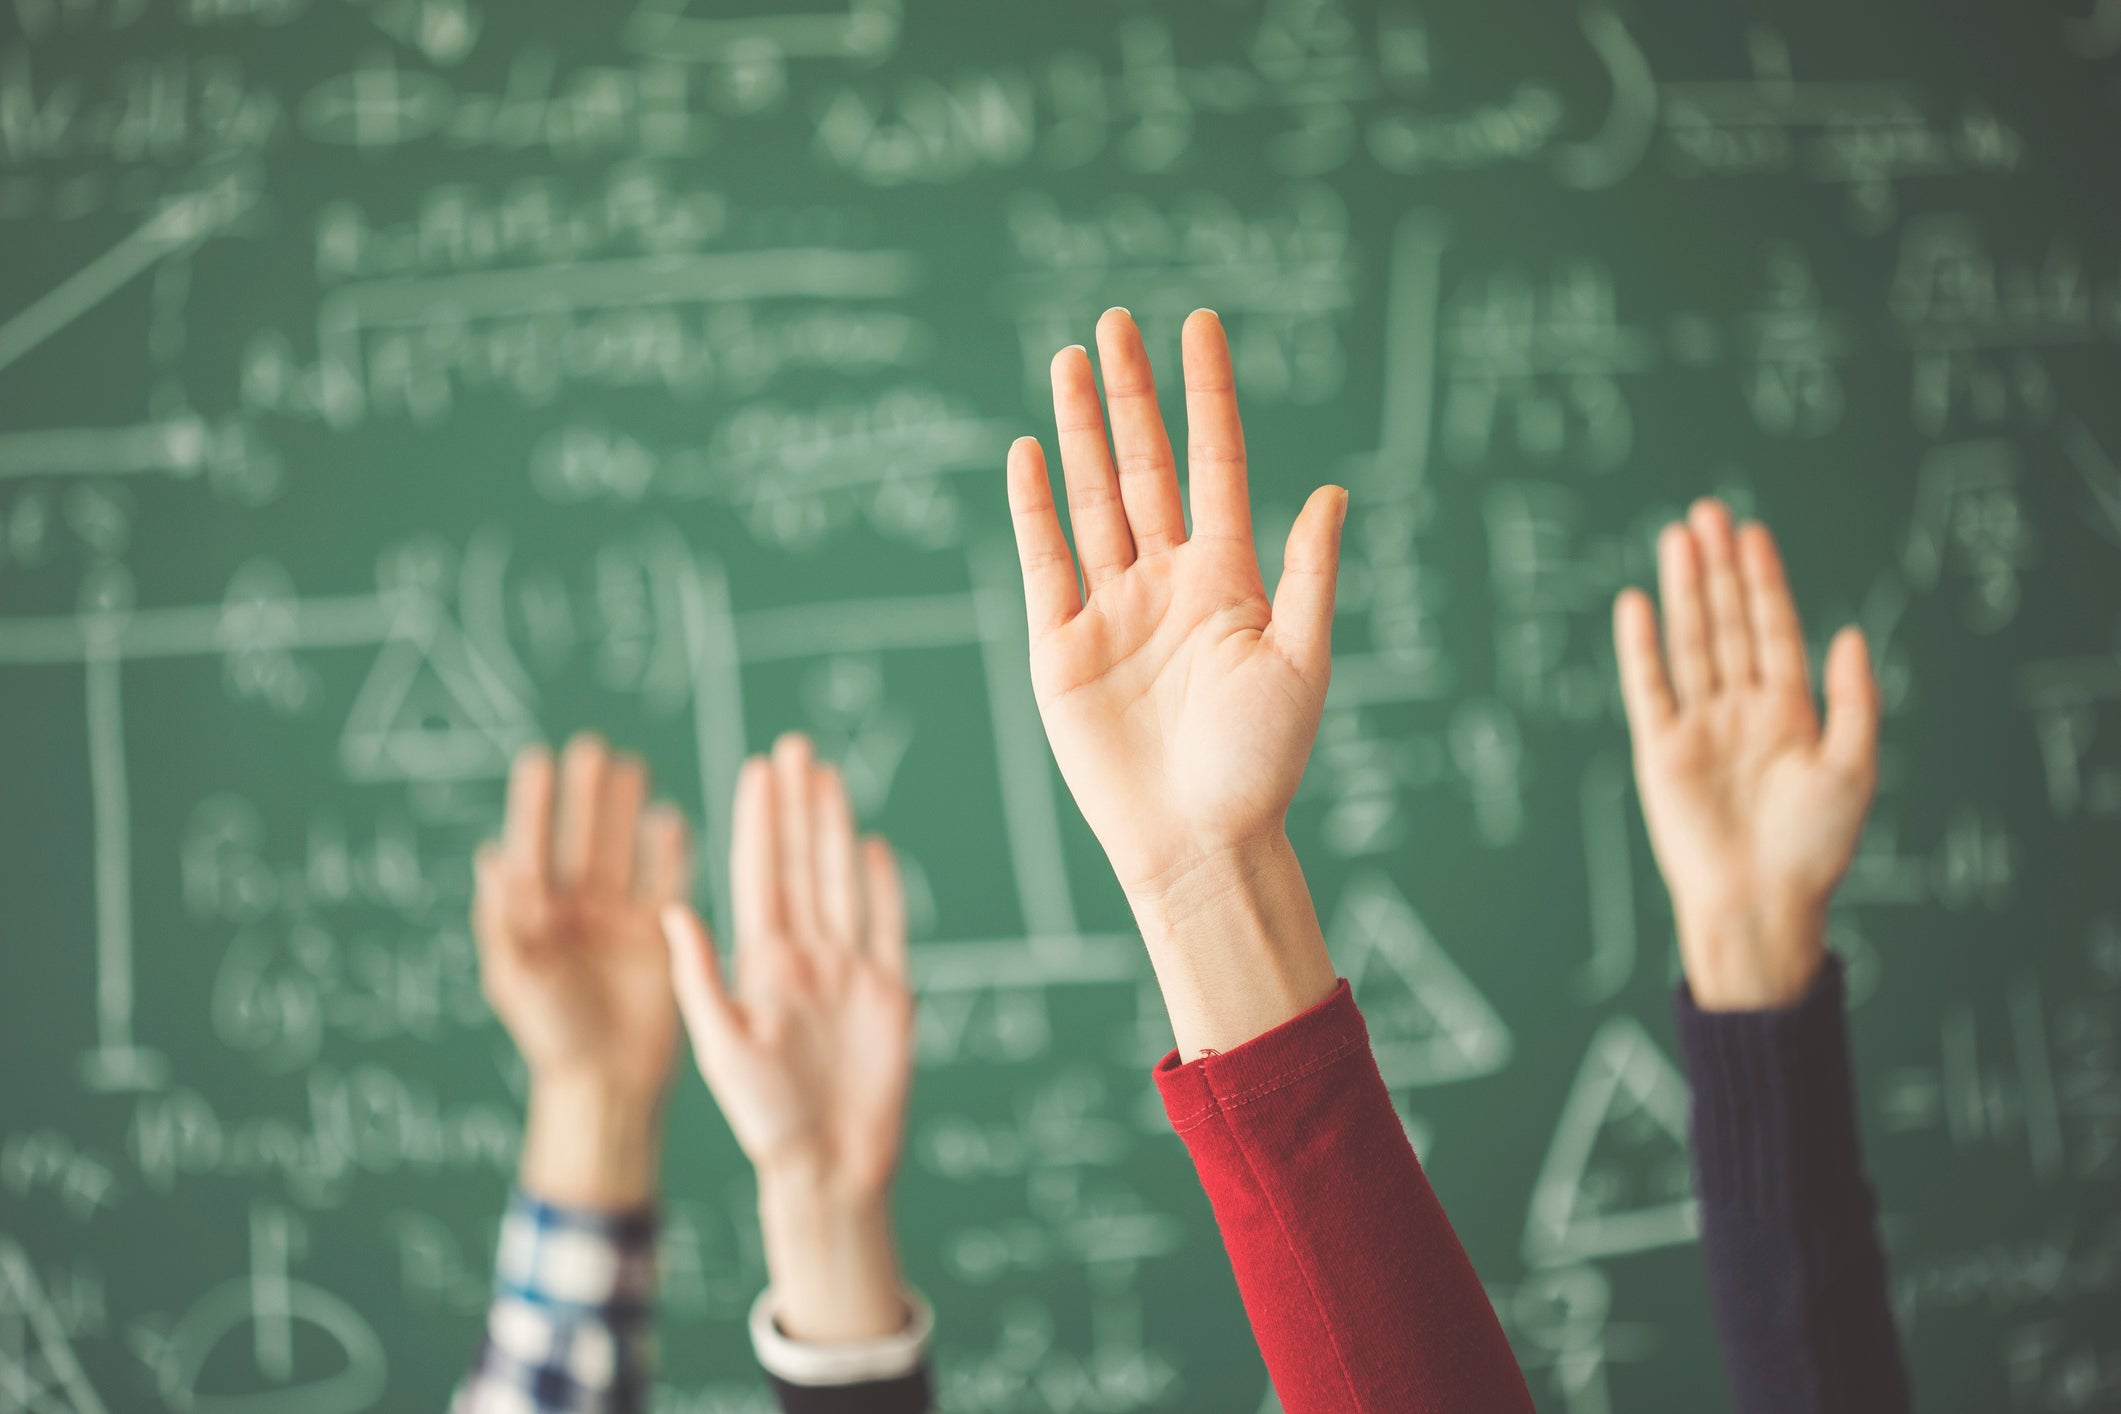 Hands raised in front of a chalkboard.